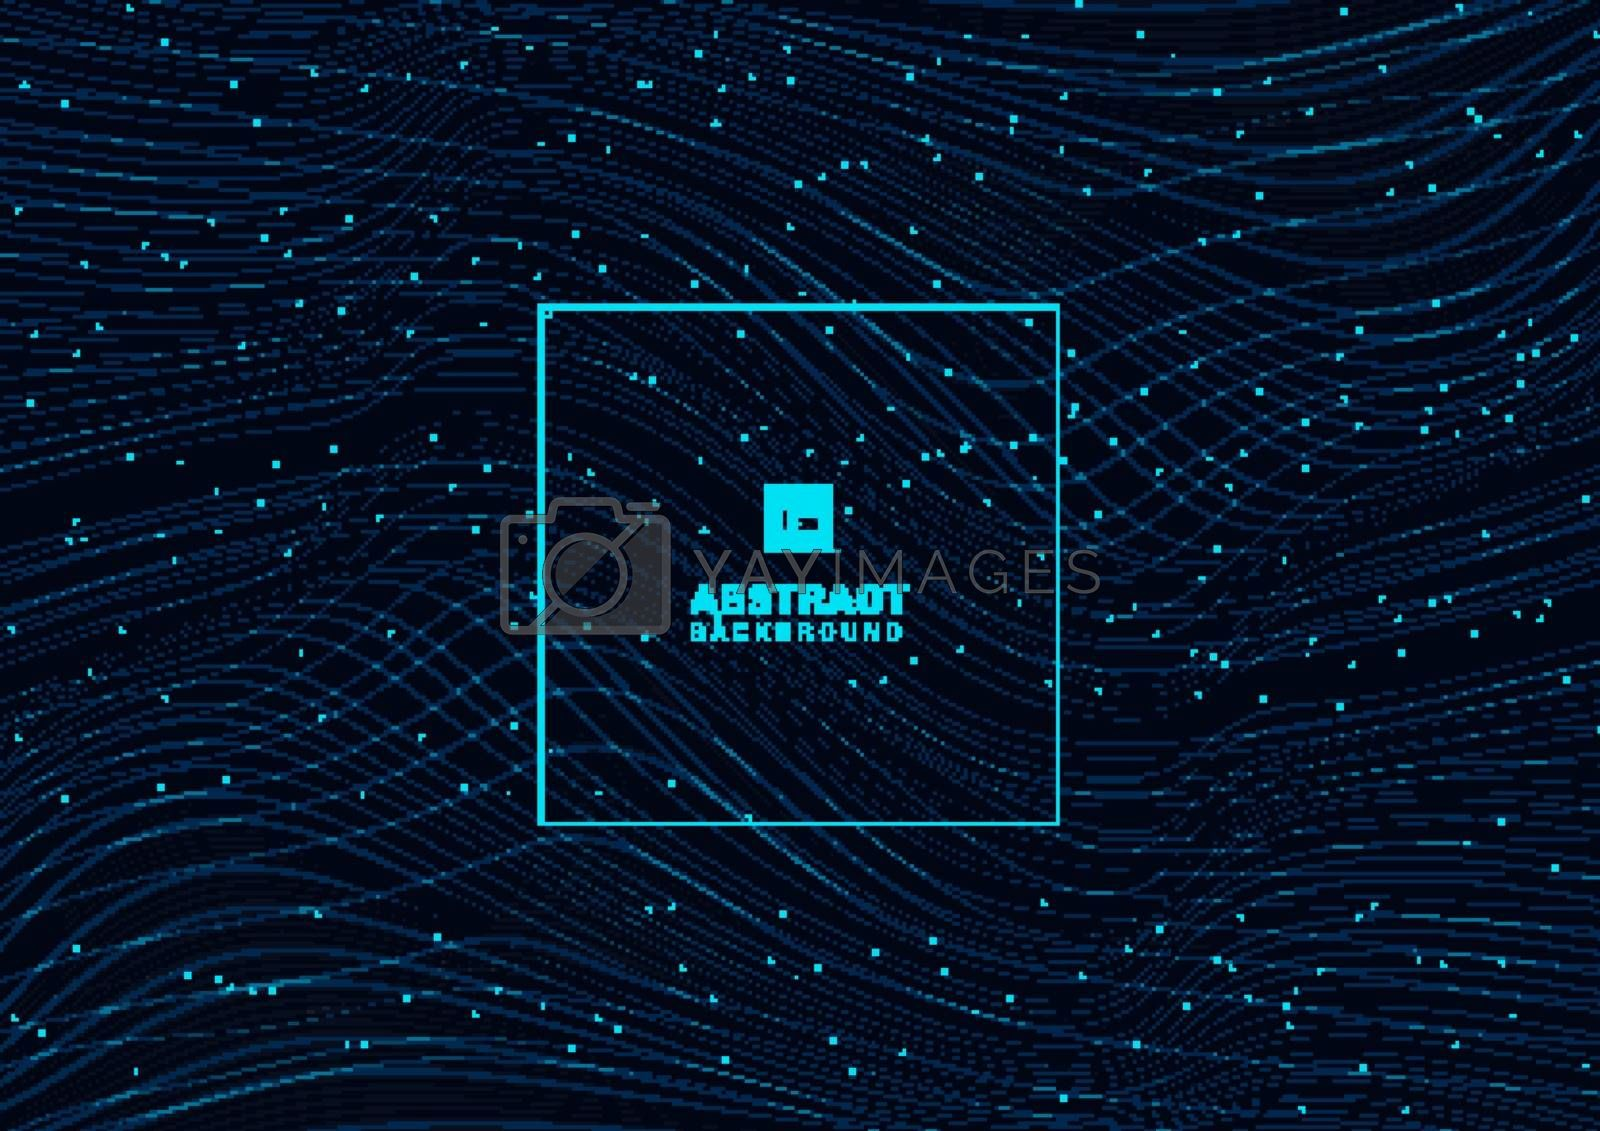 Abstract glowing blue wave lines pattern with particles elements on dark background. Technology futuristic concept. Vector illustration